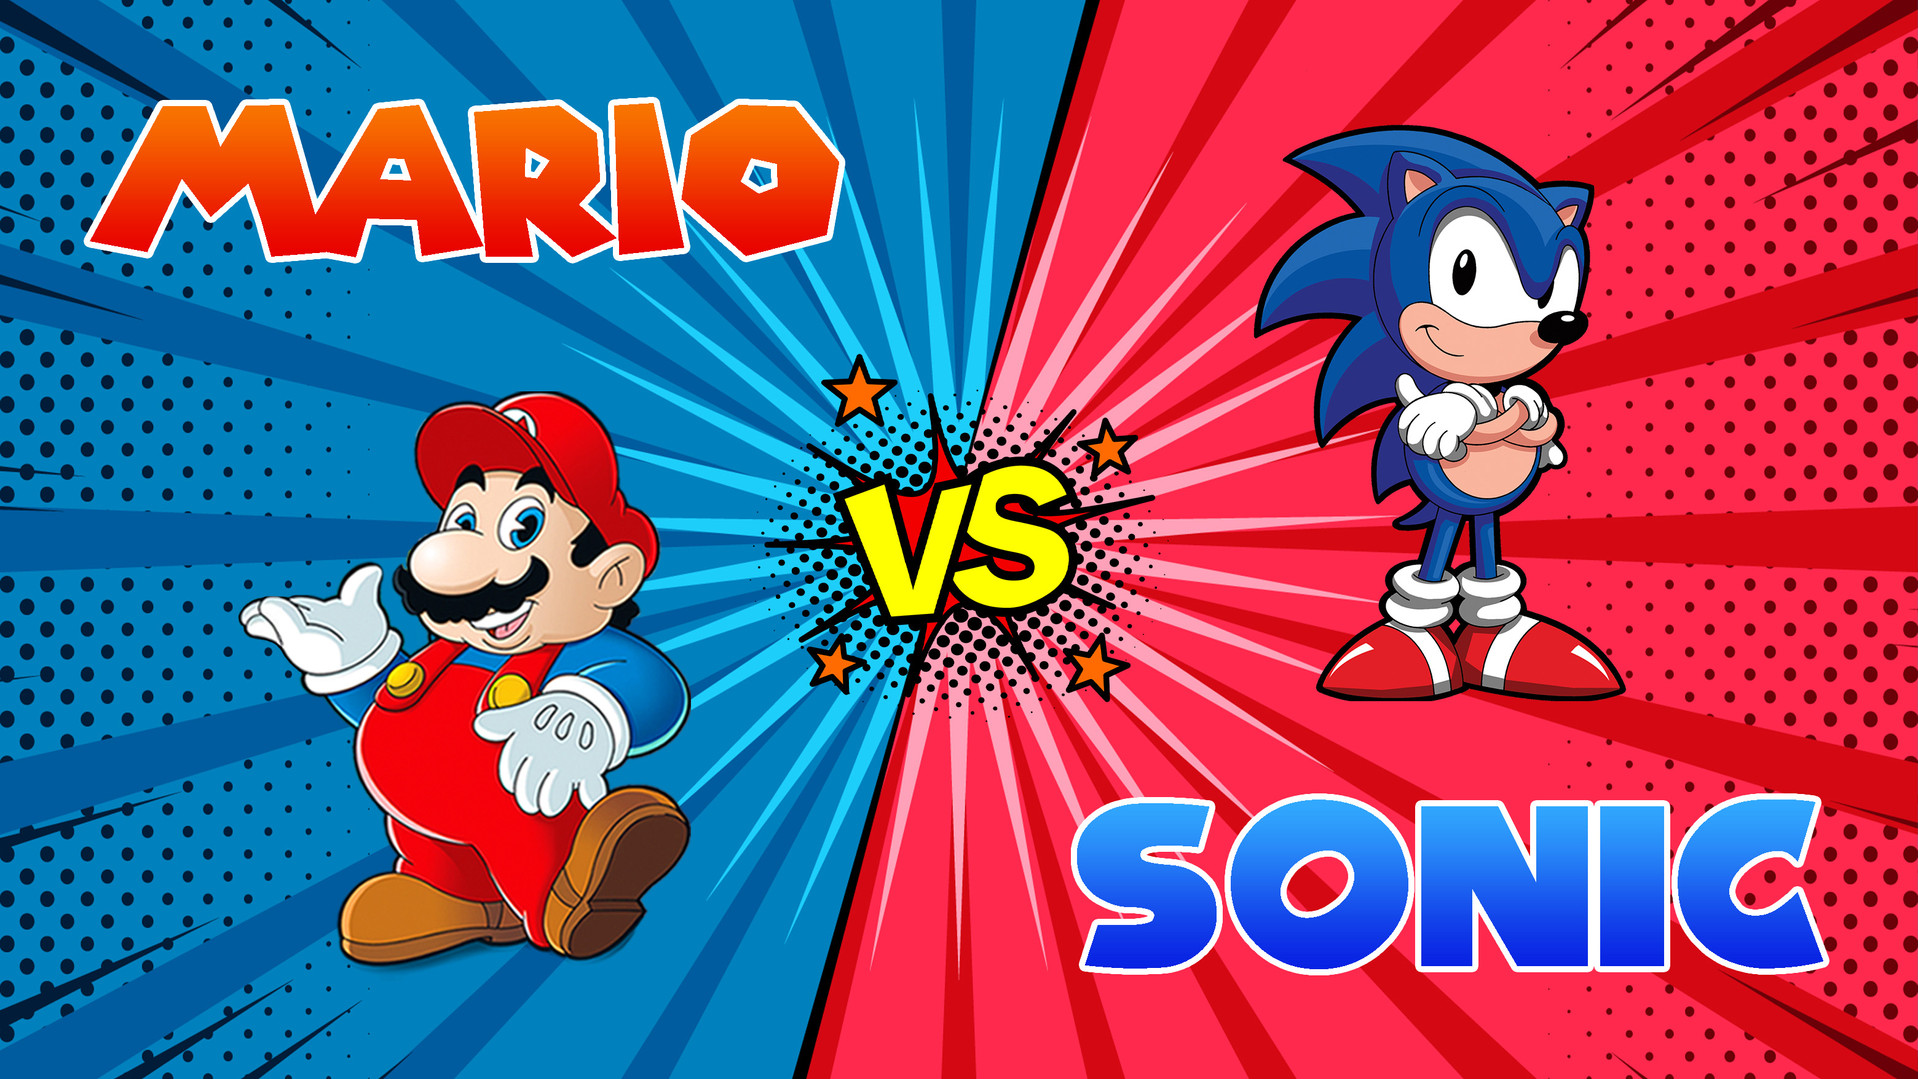 Mario vs Sonic_featuredImage.jpg